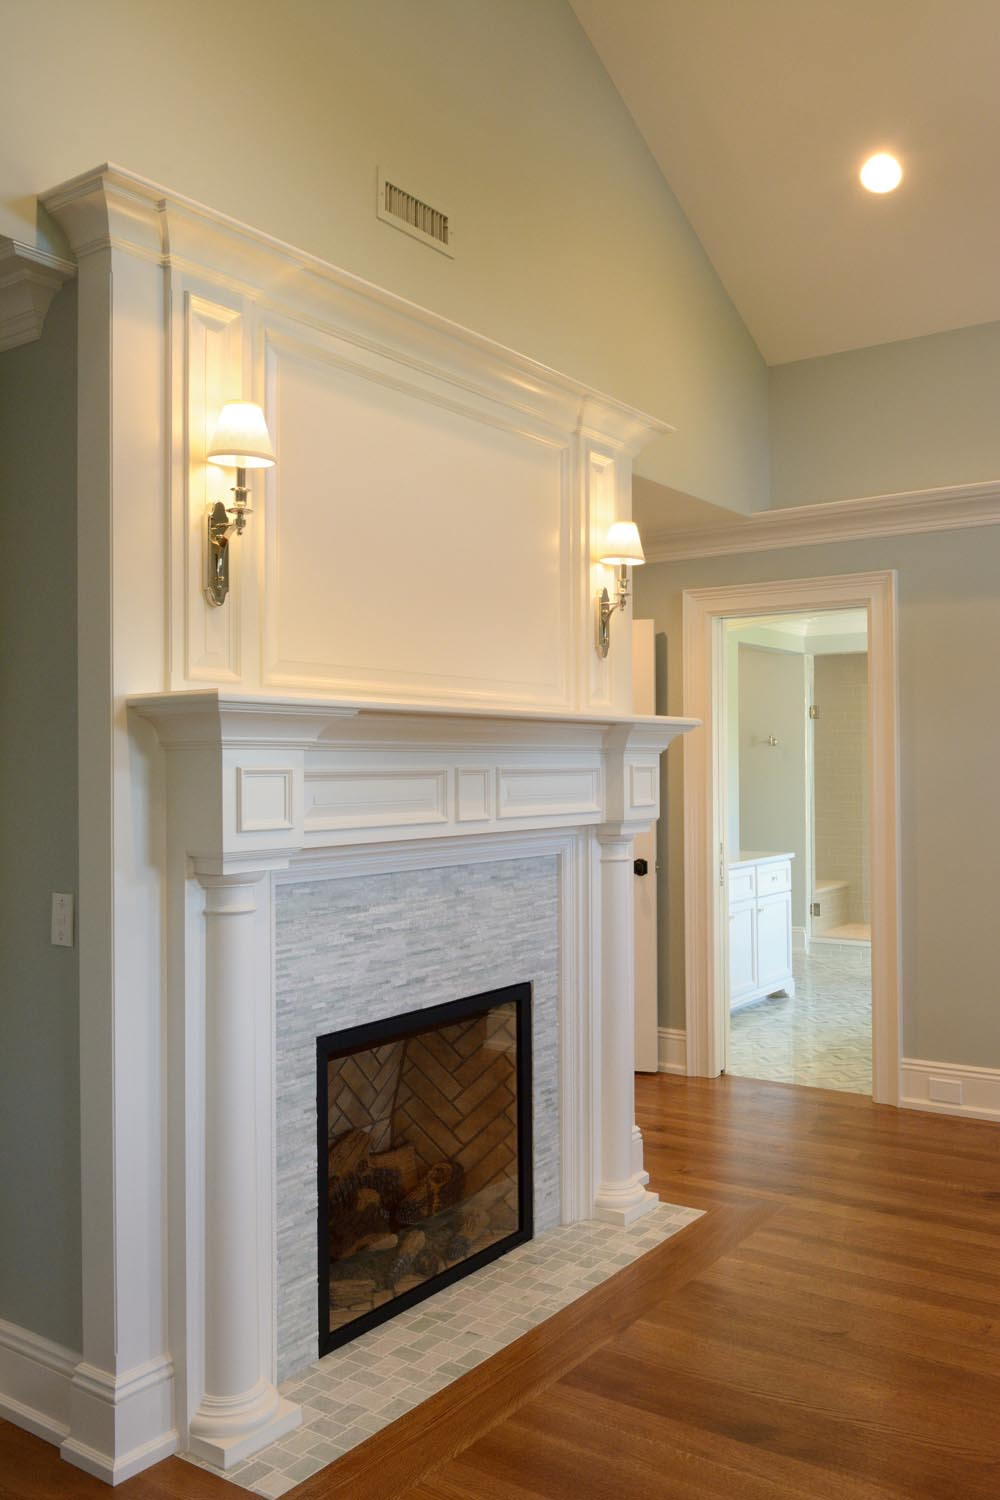 The home features seven Town & Country fireplaces with custom designed fireplace mantles